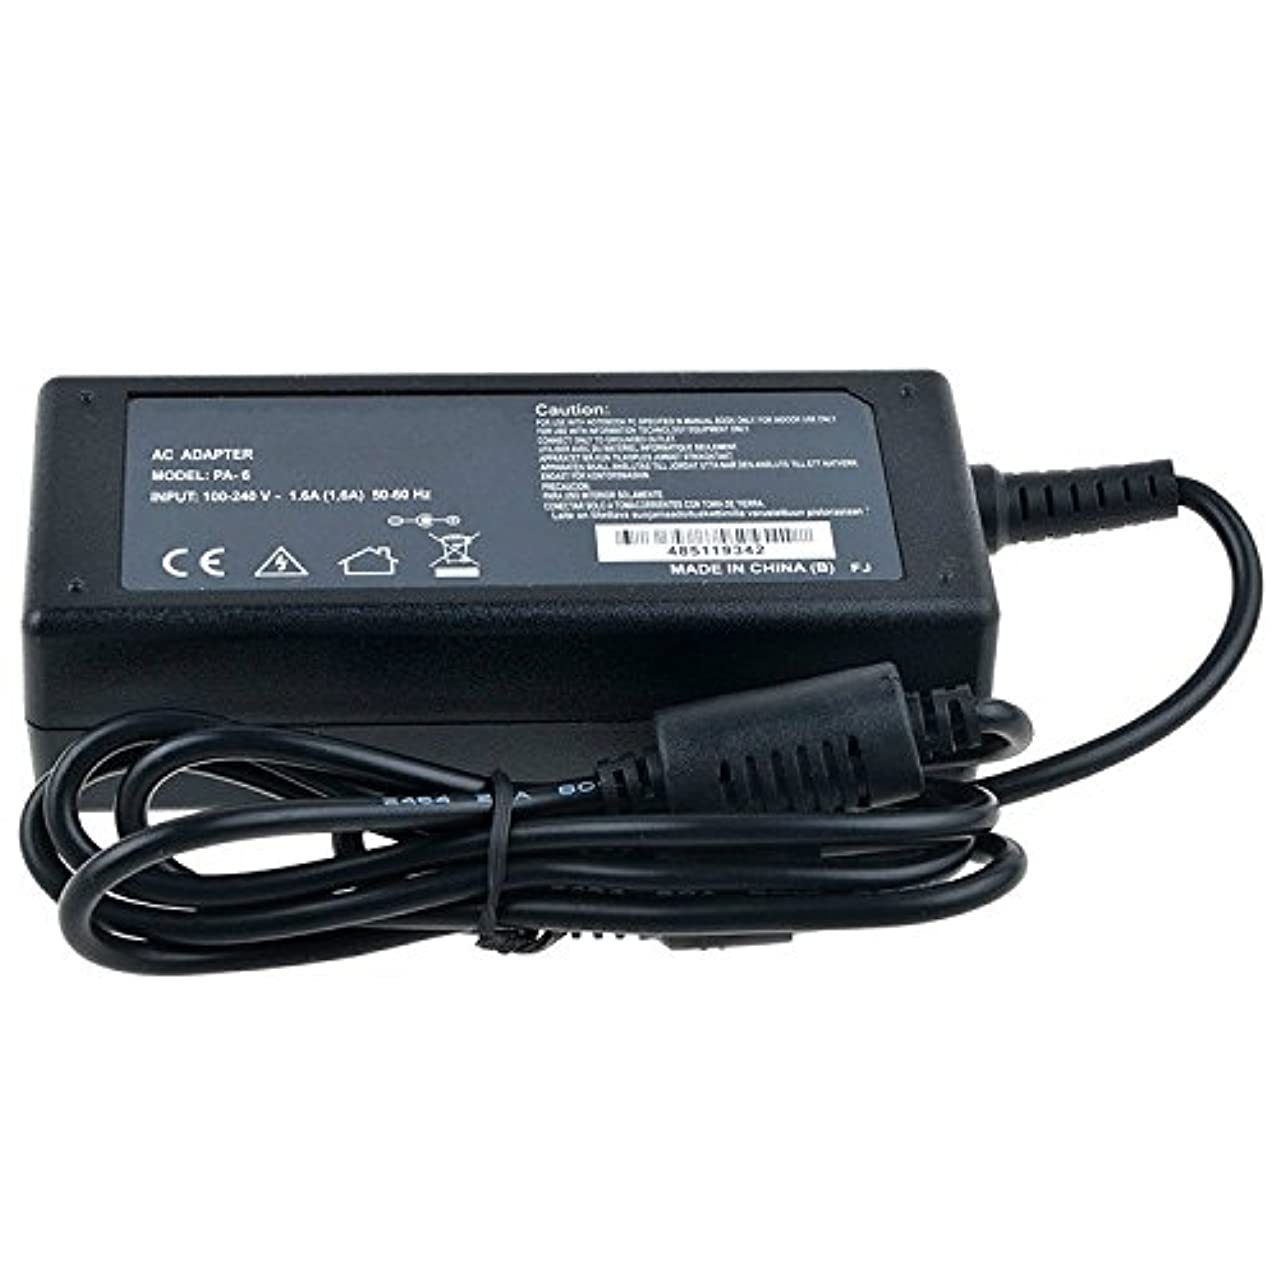 AT LCC 45W AC Adapter Charger Power for HP 15-bk020wm 15-bk002cy 15-bk002ds Notebook PC